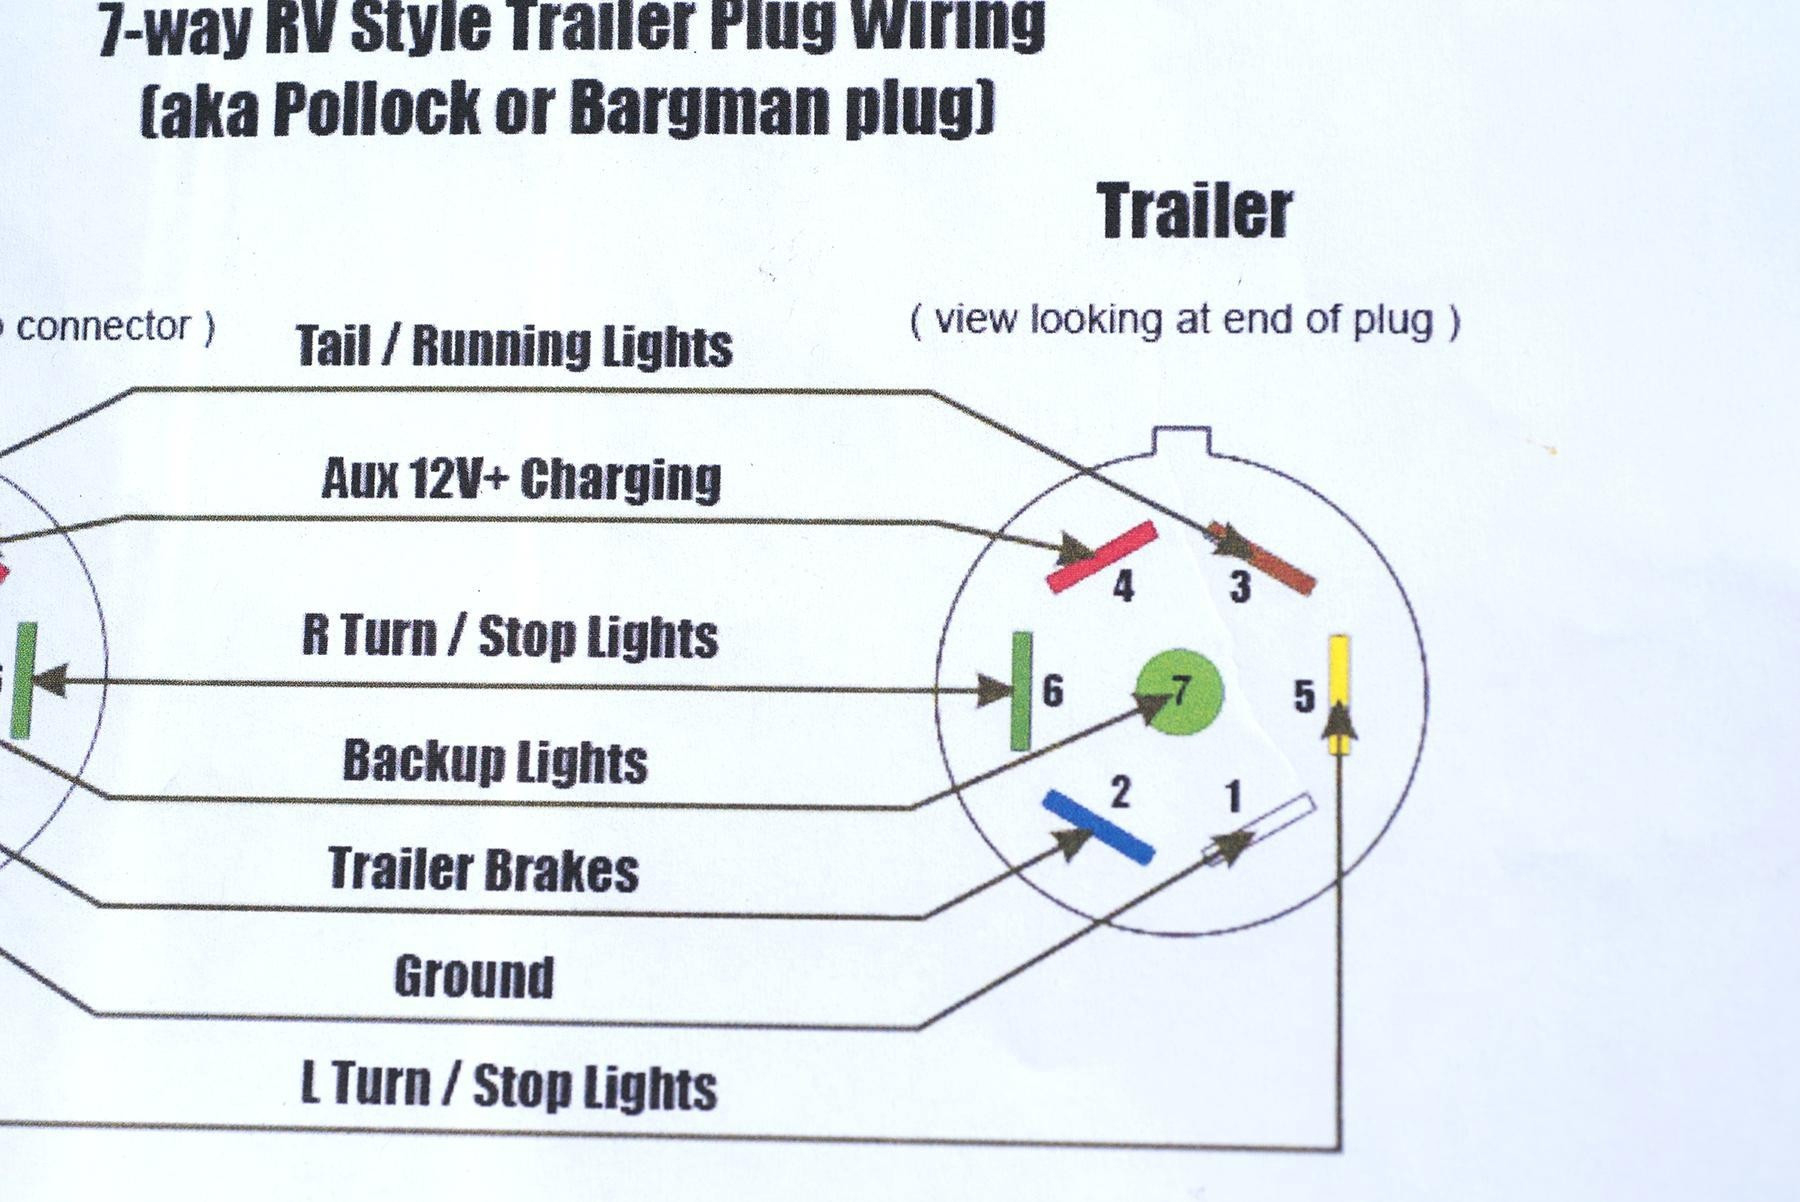 Wire Diagram For Trailer Plug - Wiring Diagrams Click - Military Trailer Wiring Diagram